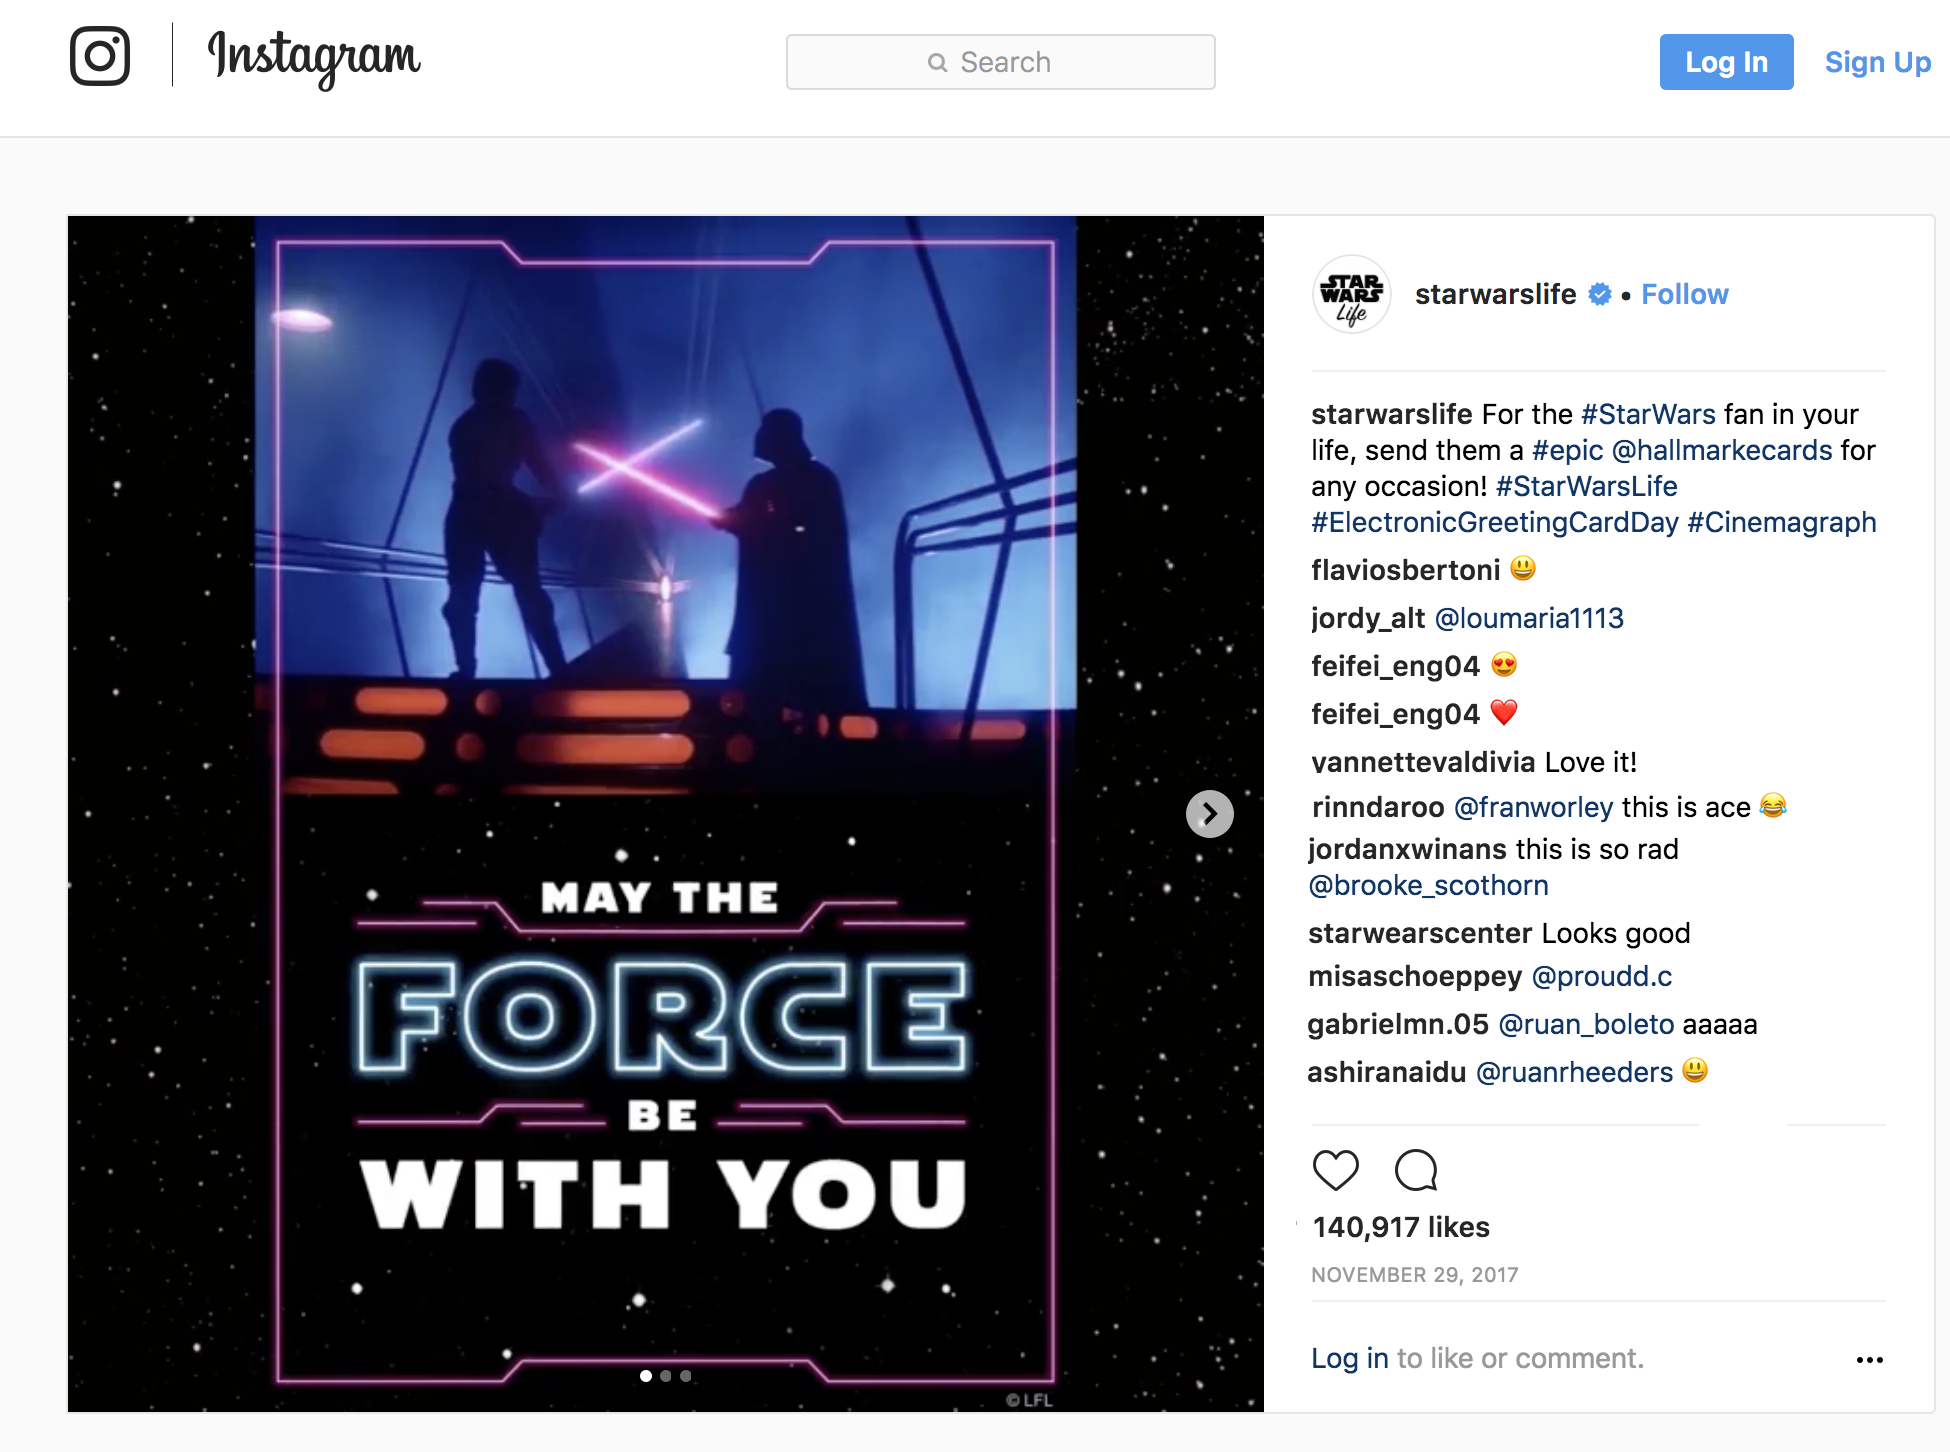 SOCIAL IMPACT - Lucasfilm liked the final product so much that they shared it on their Instagram feed